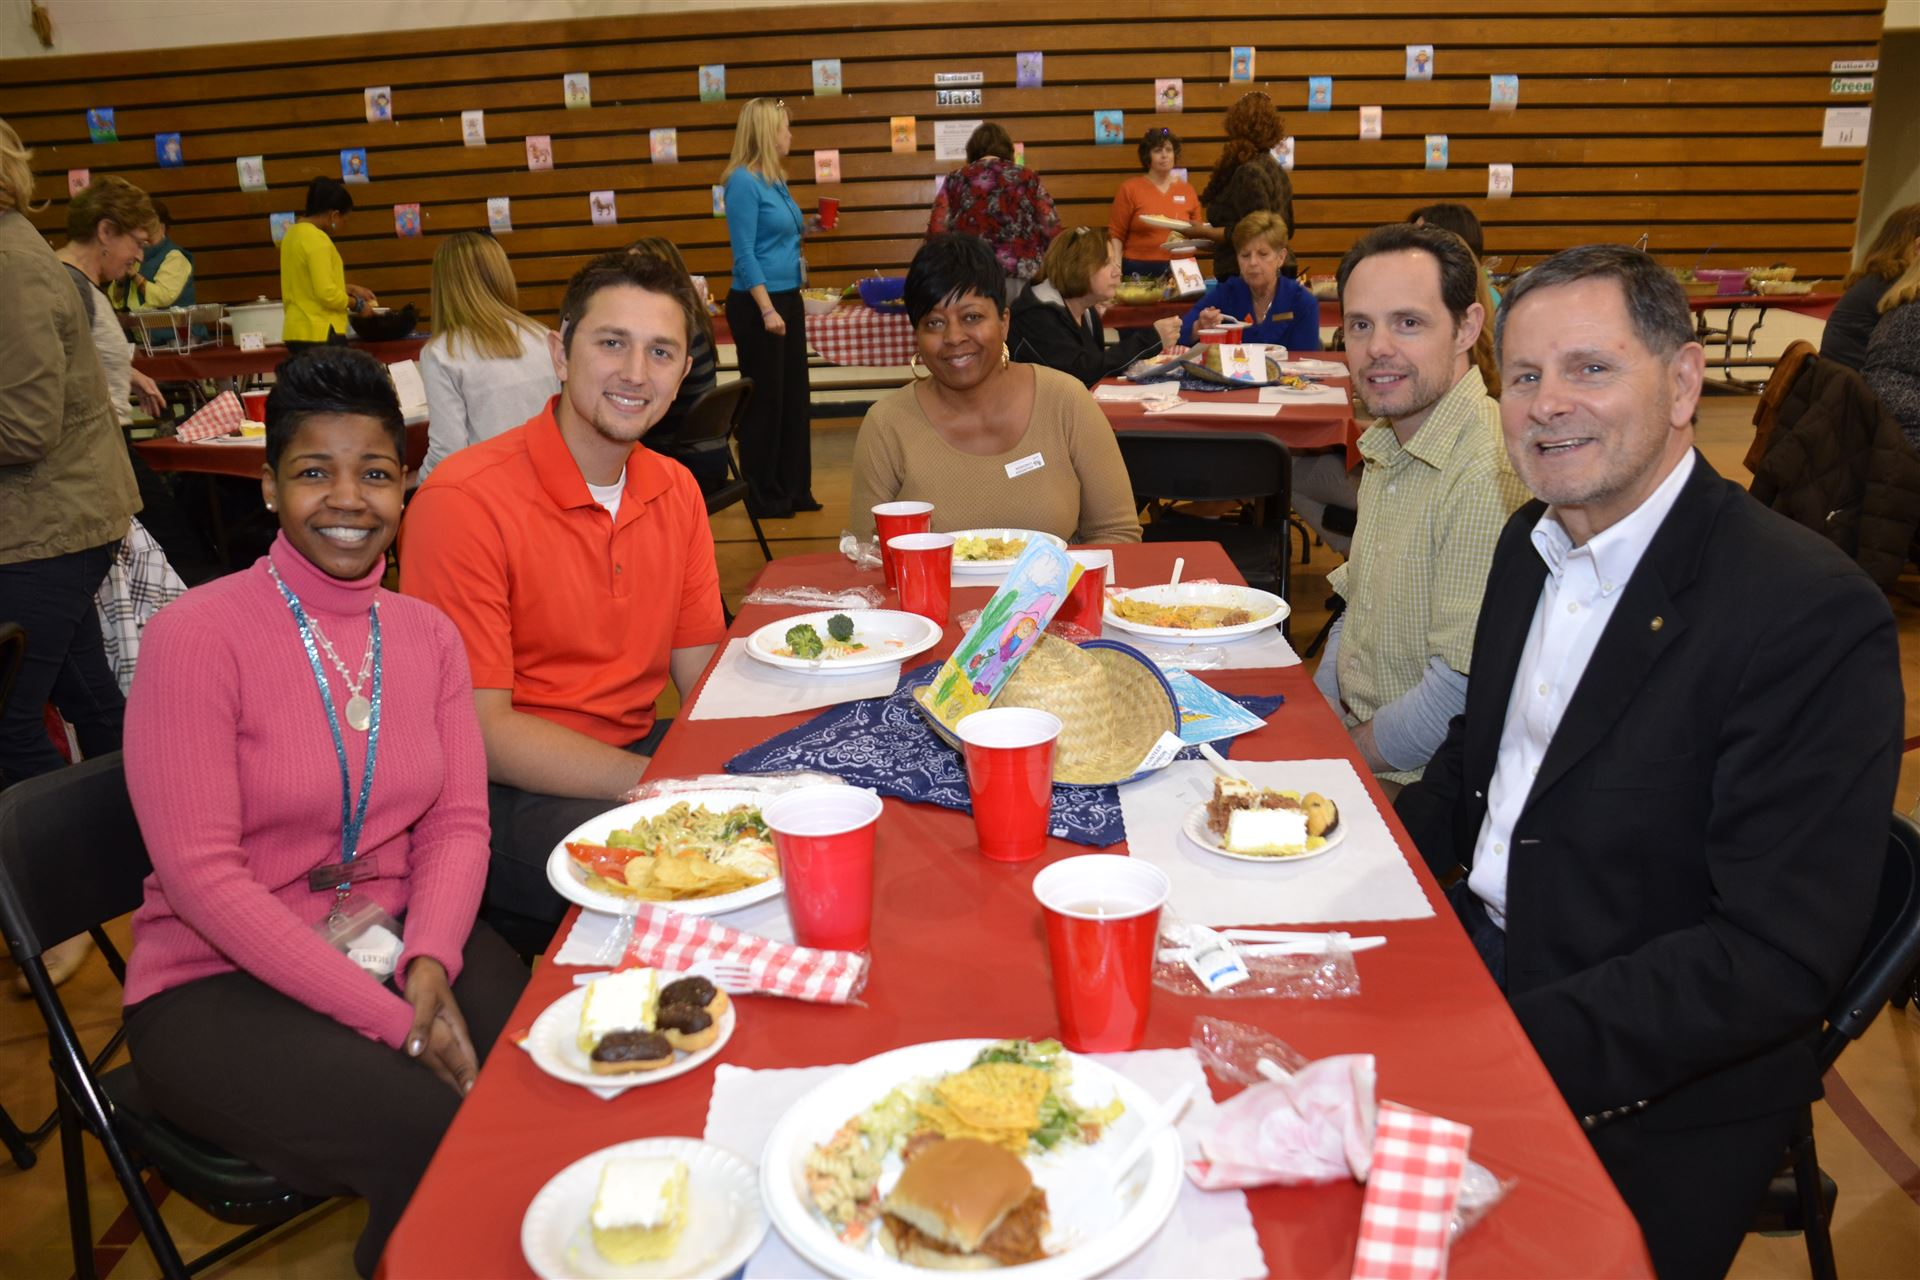 Robert Frost Elementary volunteer luncheon